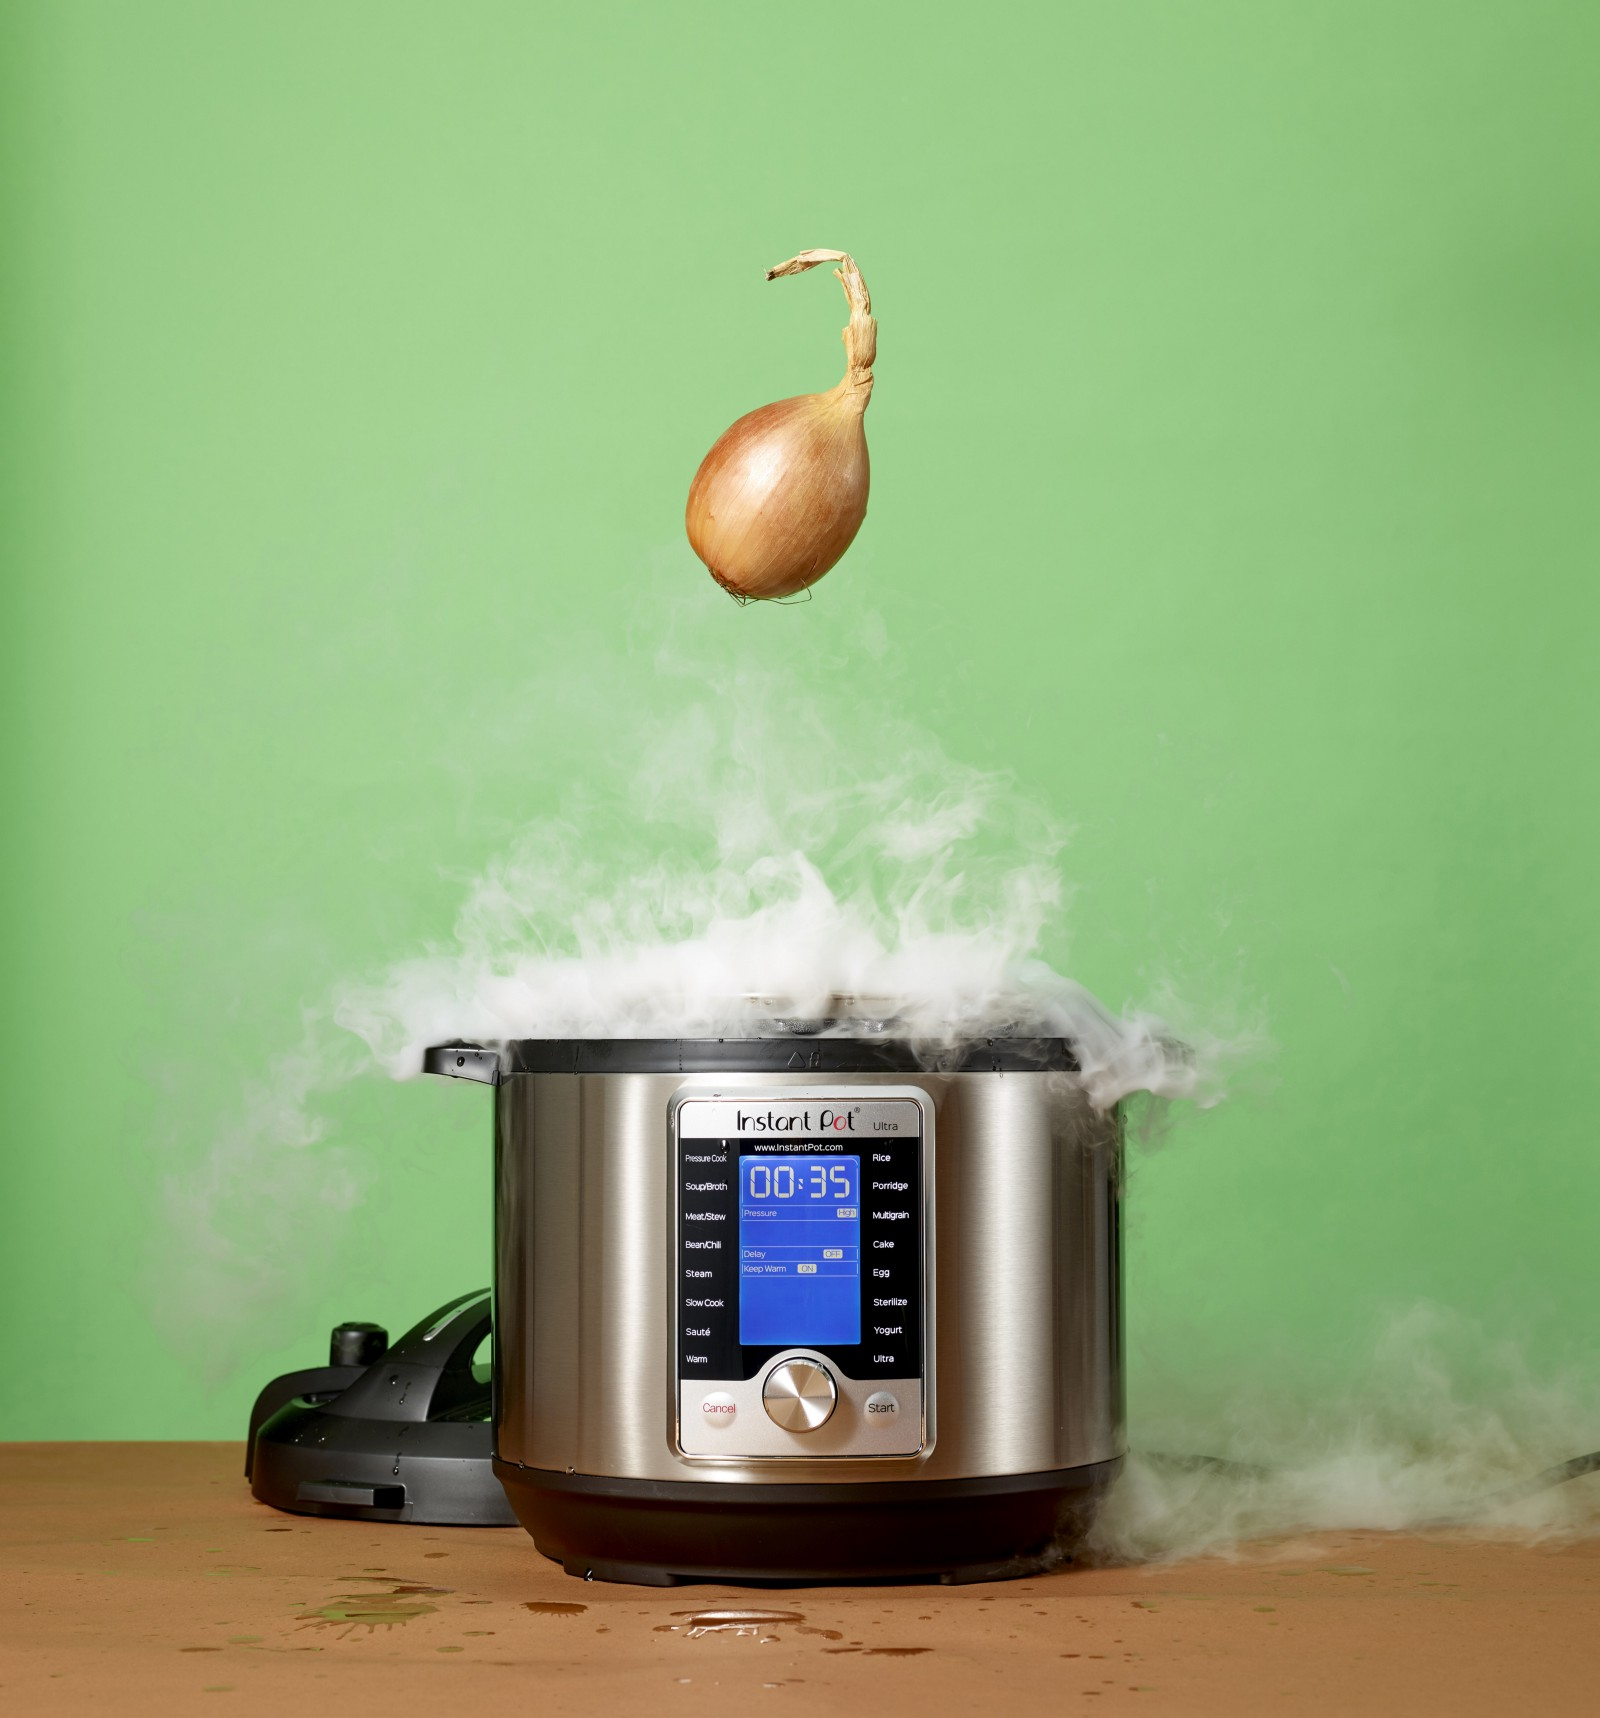 Modern Home Gadgets Inside The Home Of Instant Pot The Kitchen Gadget That